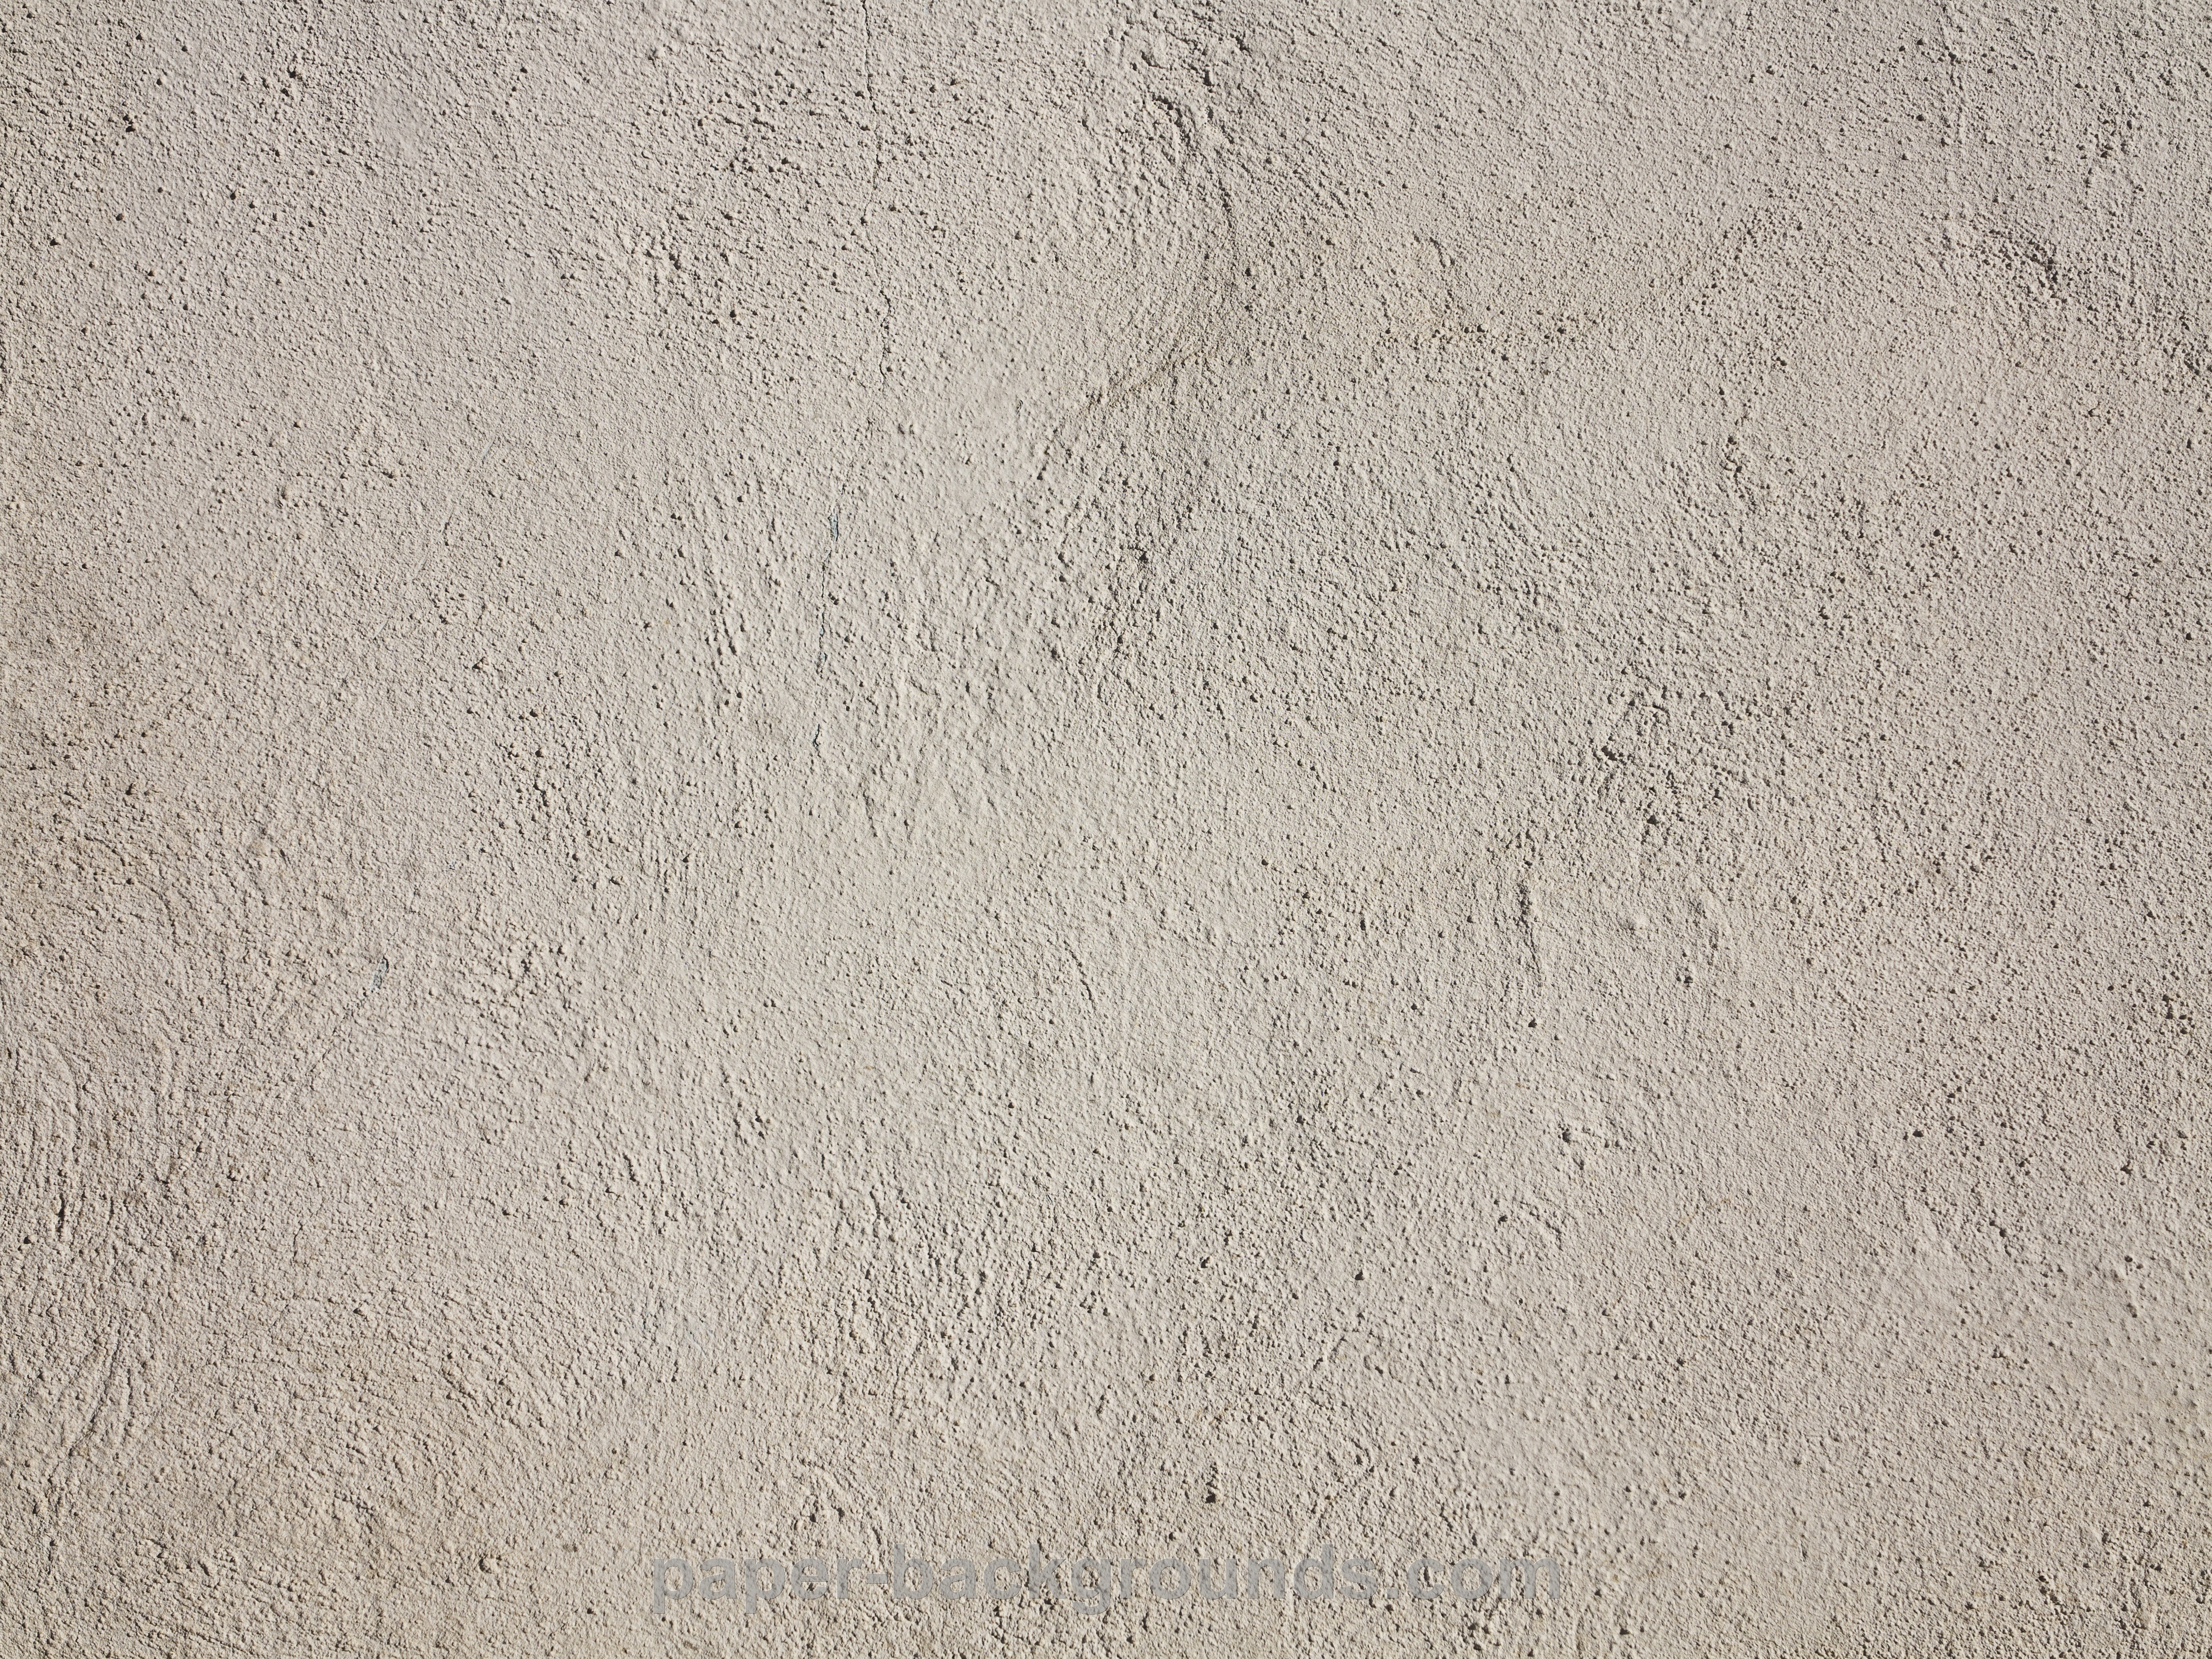 White Wall Texture : White Vintage Wall Texture, High Resolution 4352 x 3264 pixels, Large ...